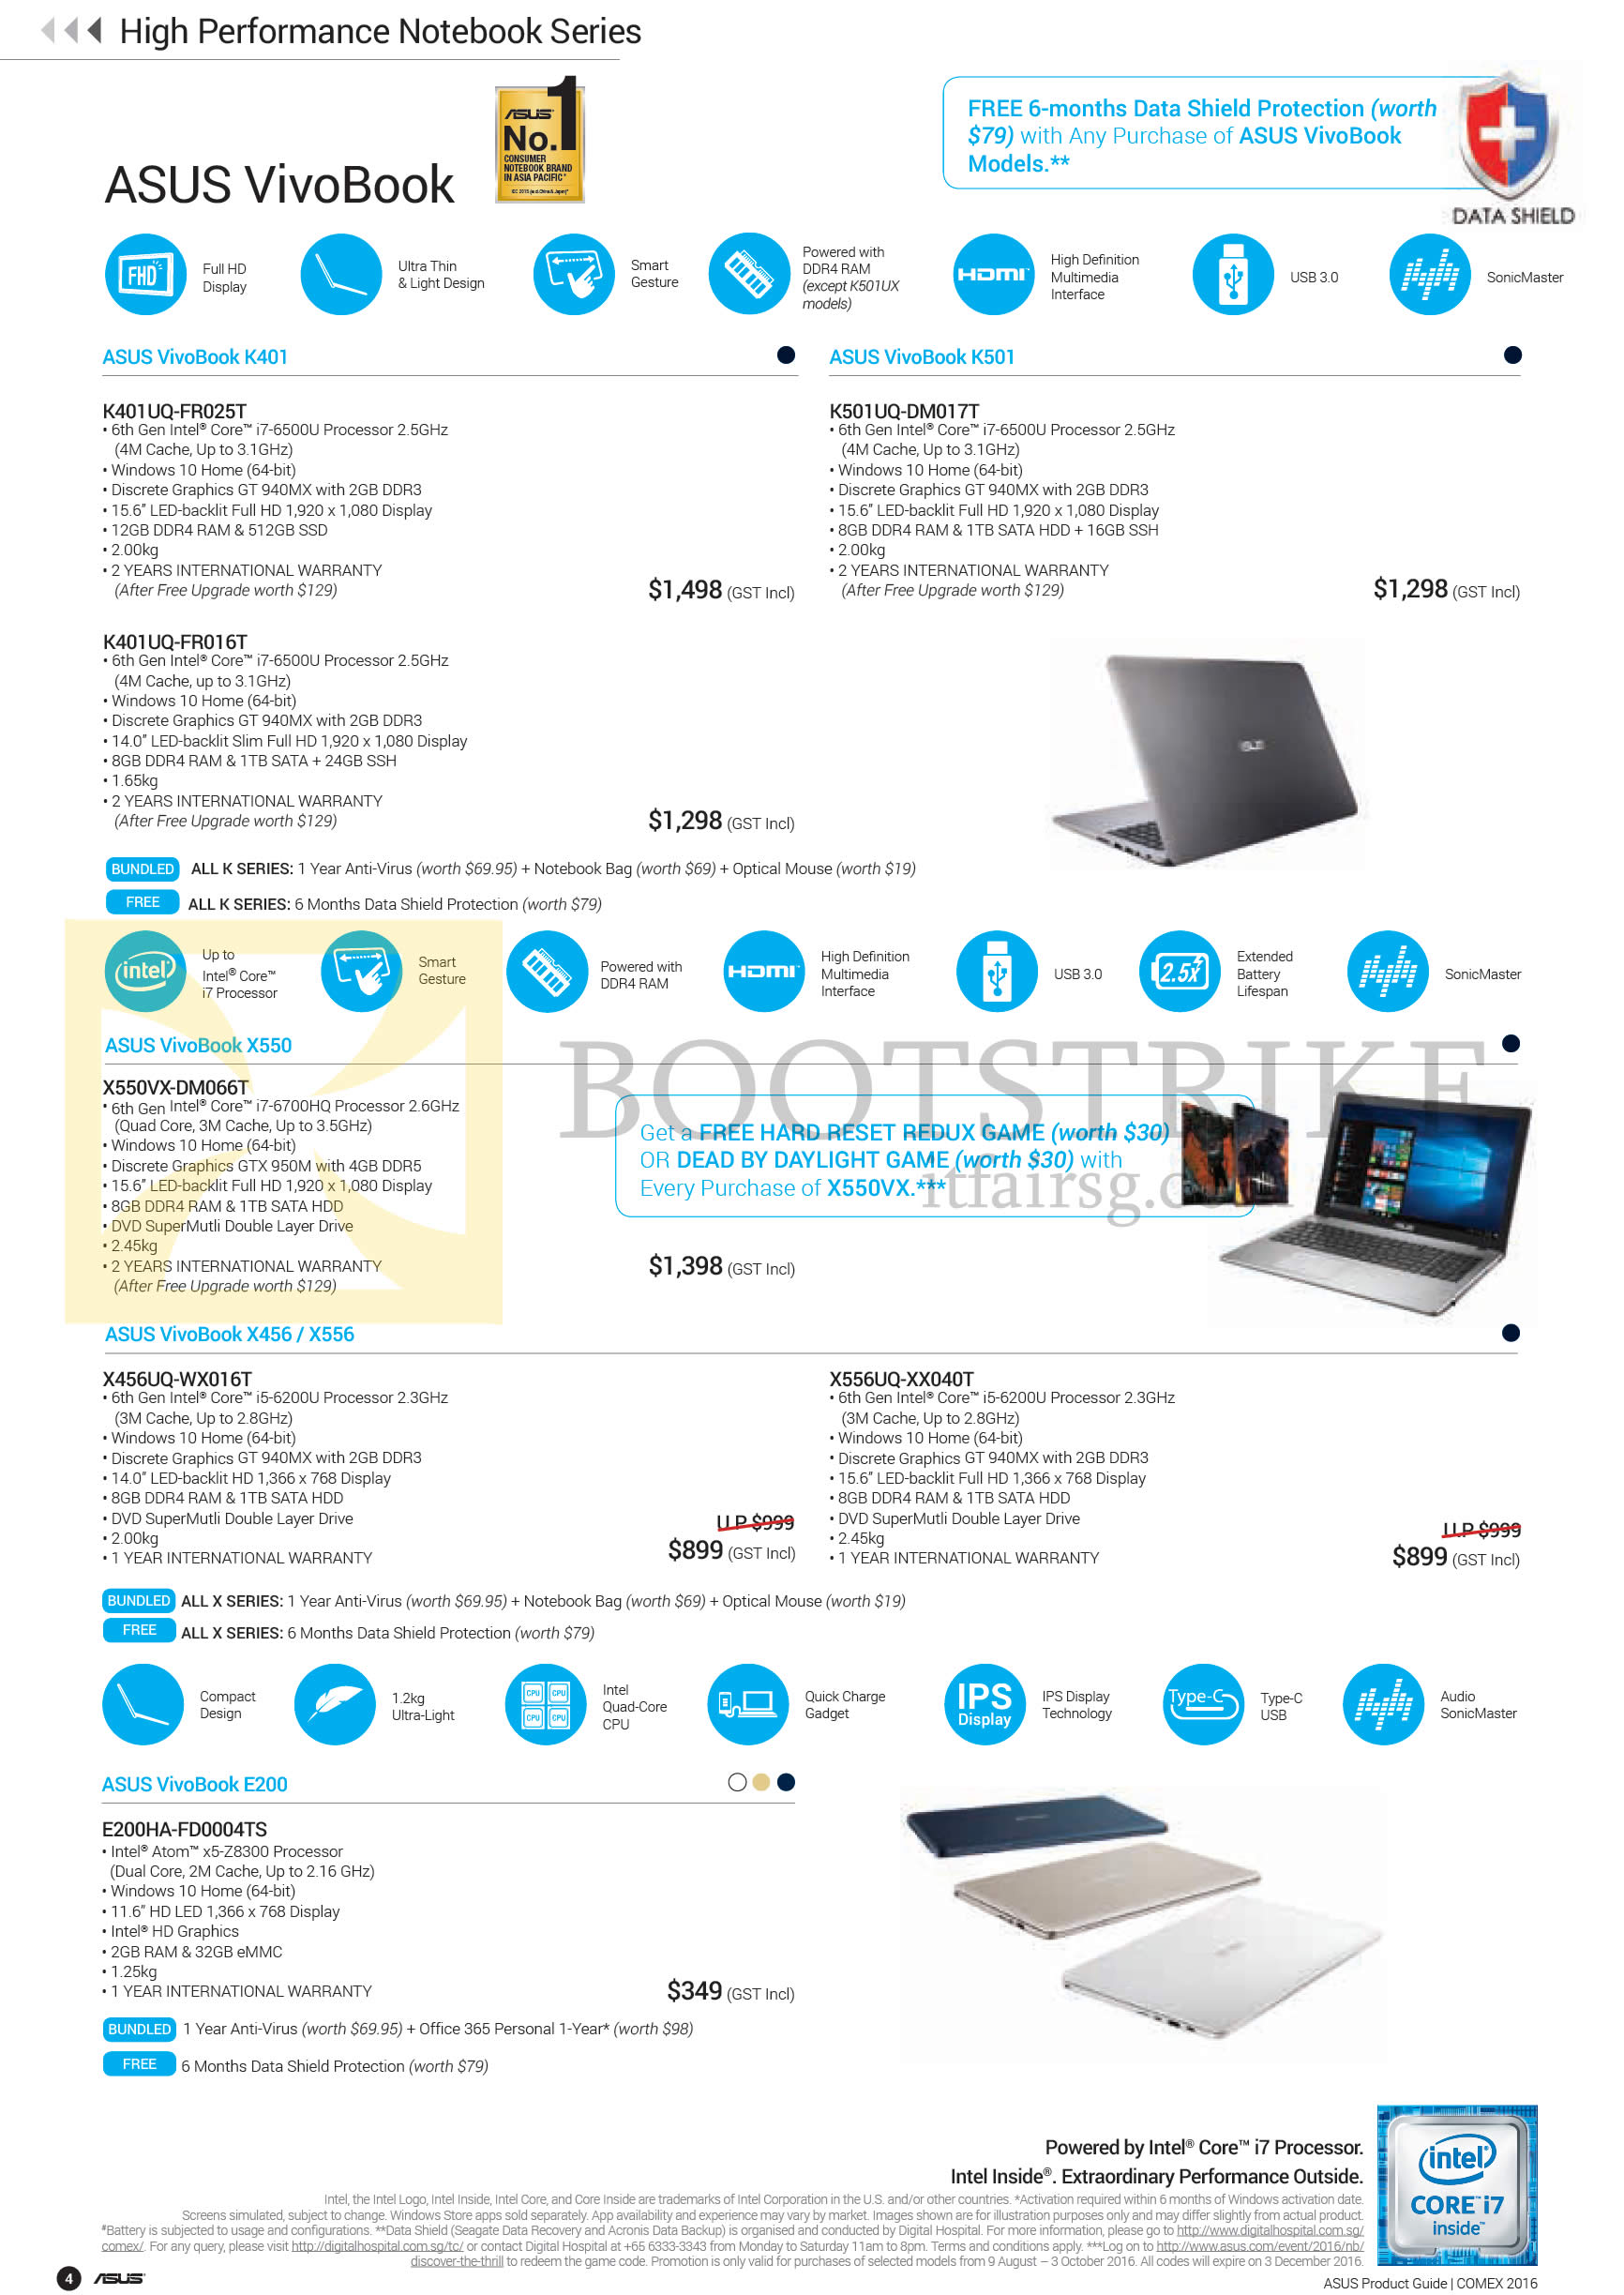 COMEX 2016 price list image brochure of ASUS Notebooks VivoBook K401, K501, X550, X456, X556, E200 Series